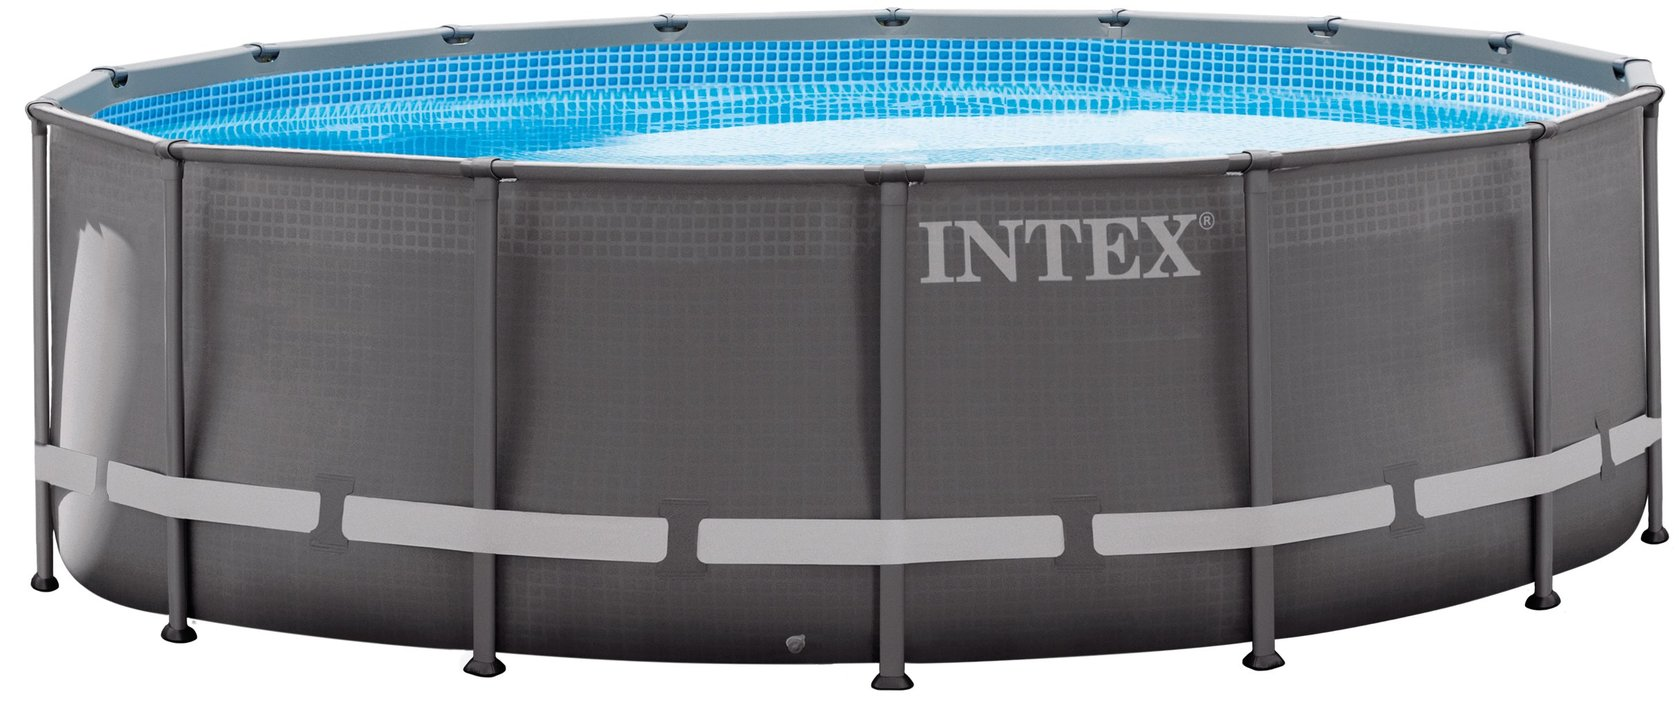 Intex Ultra Framepool 488x122cm